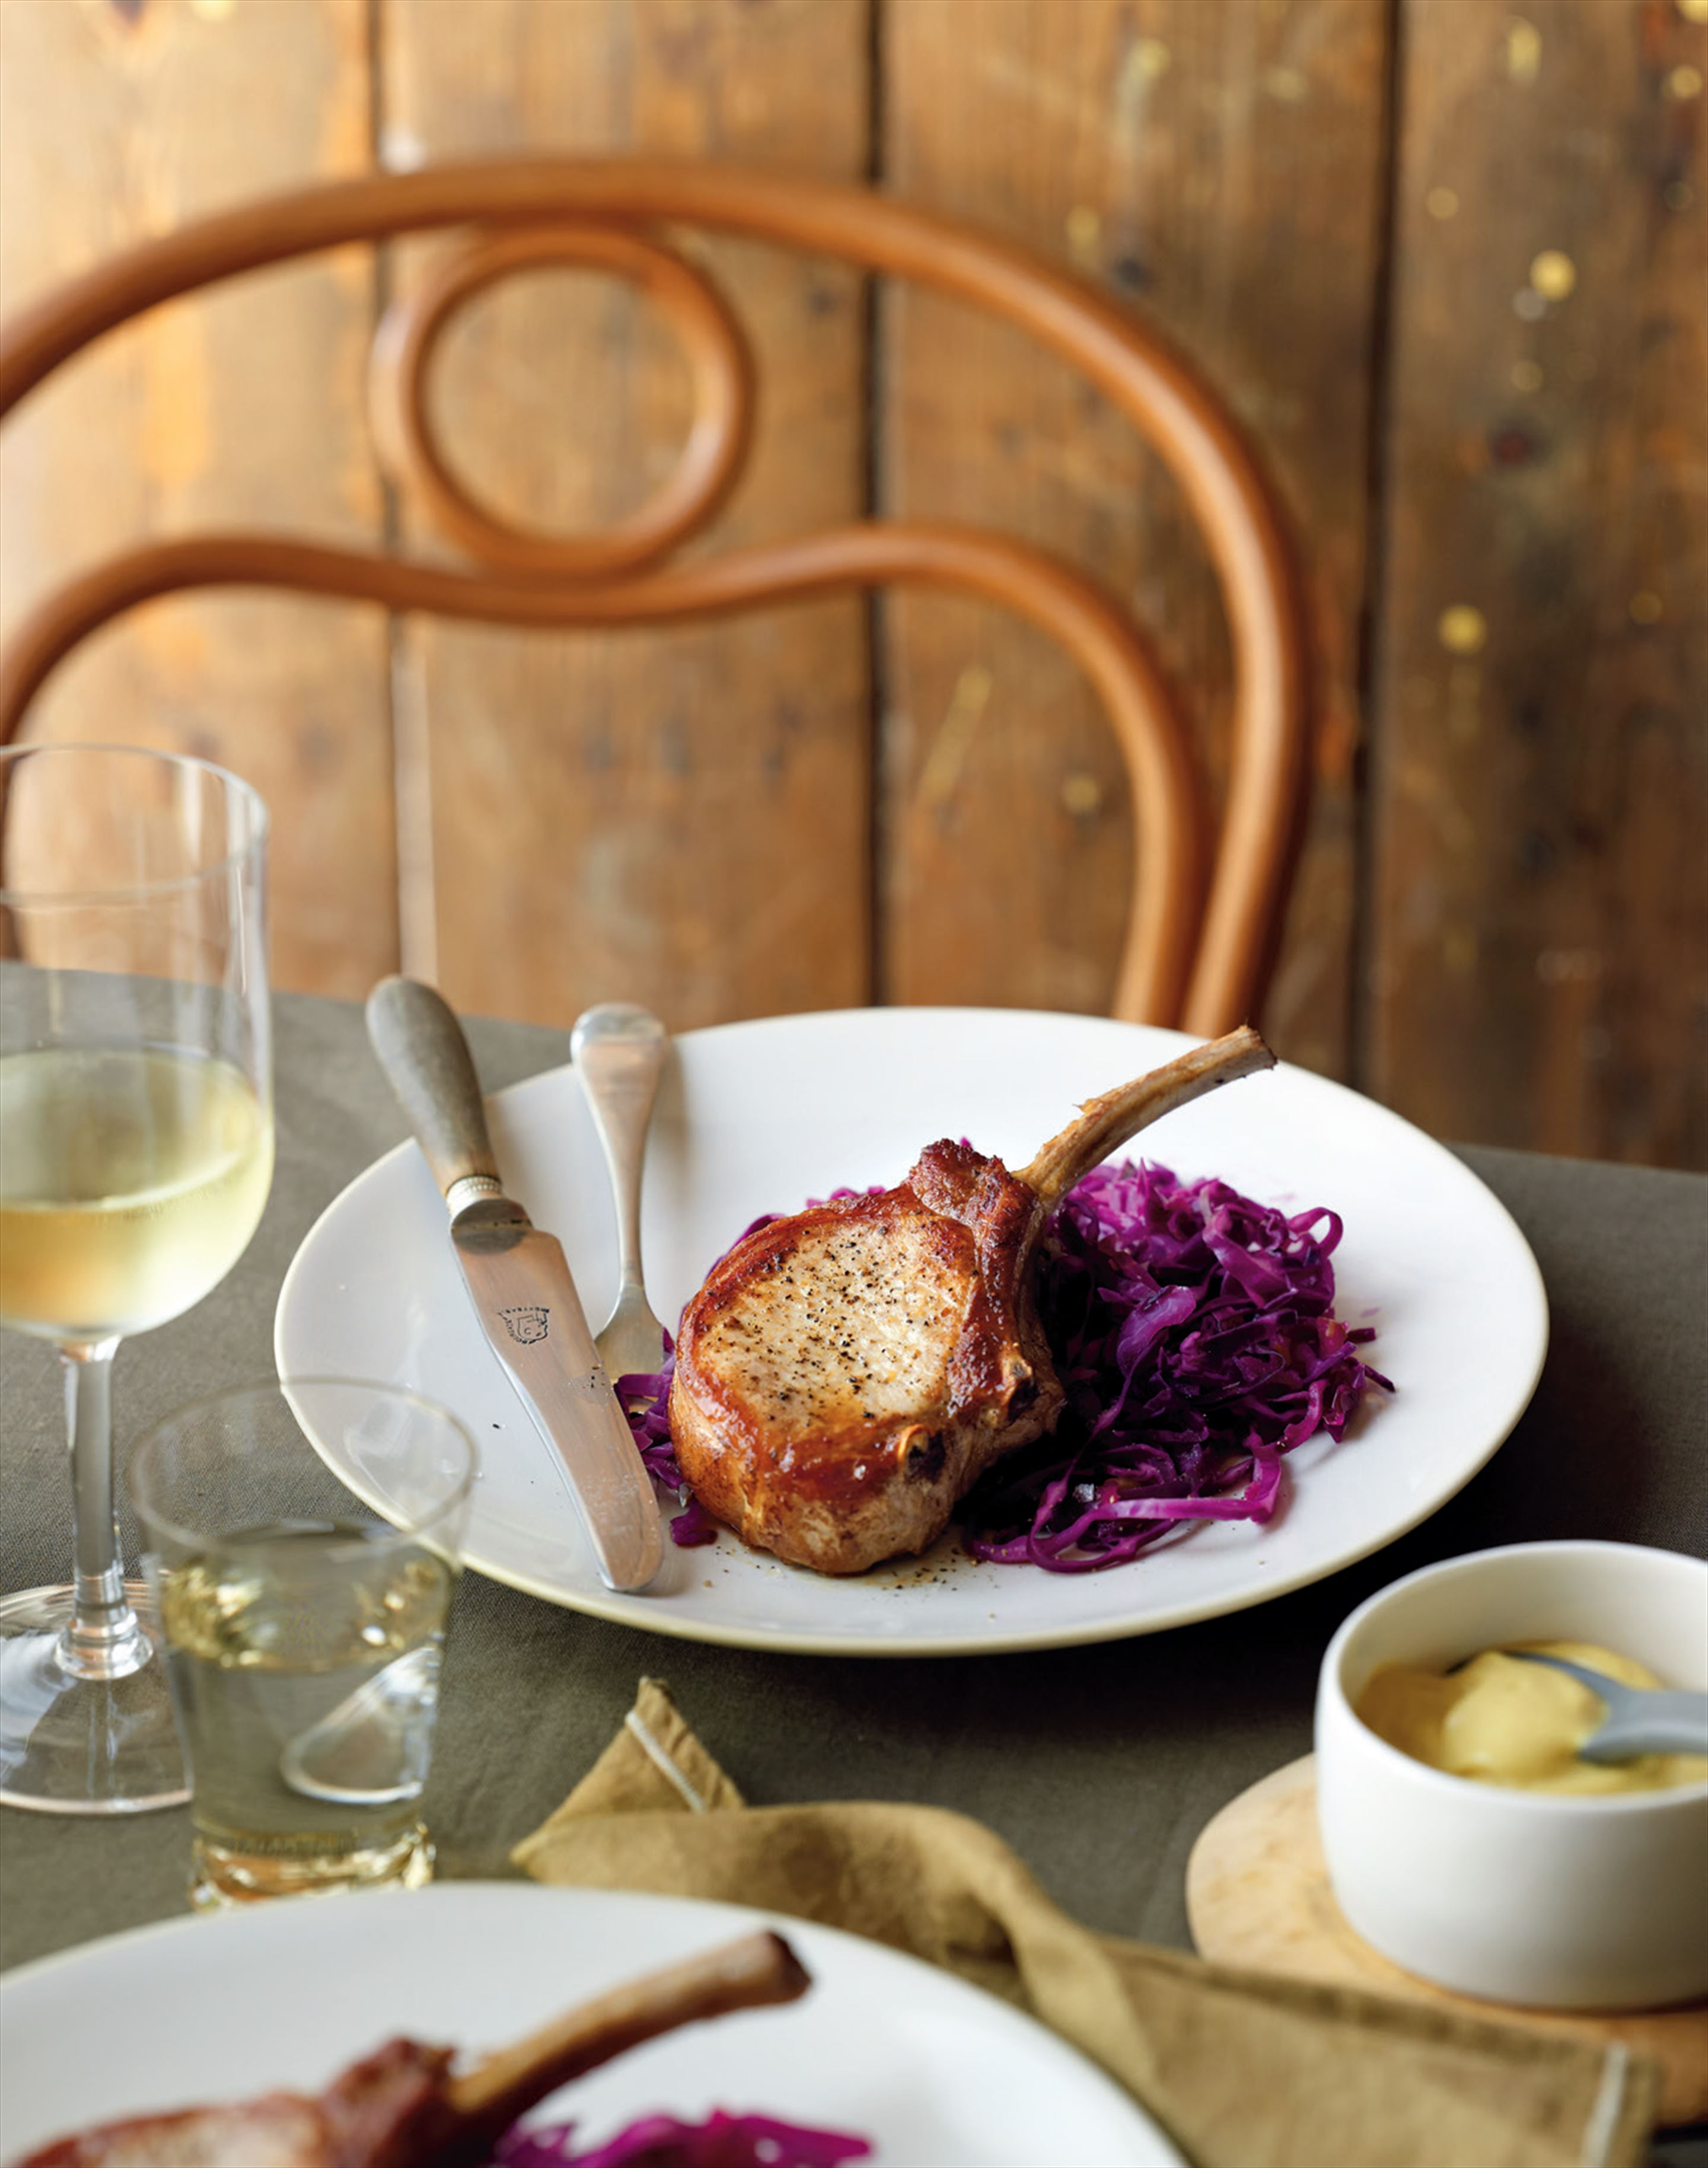 Pork chops with red cabbage and fennel